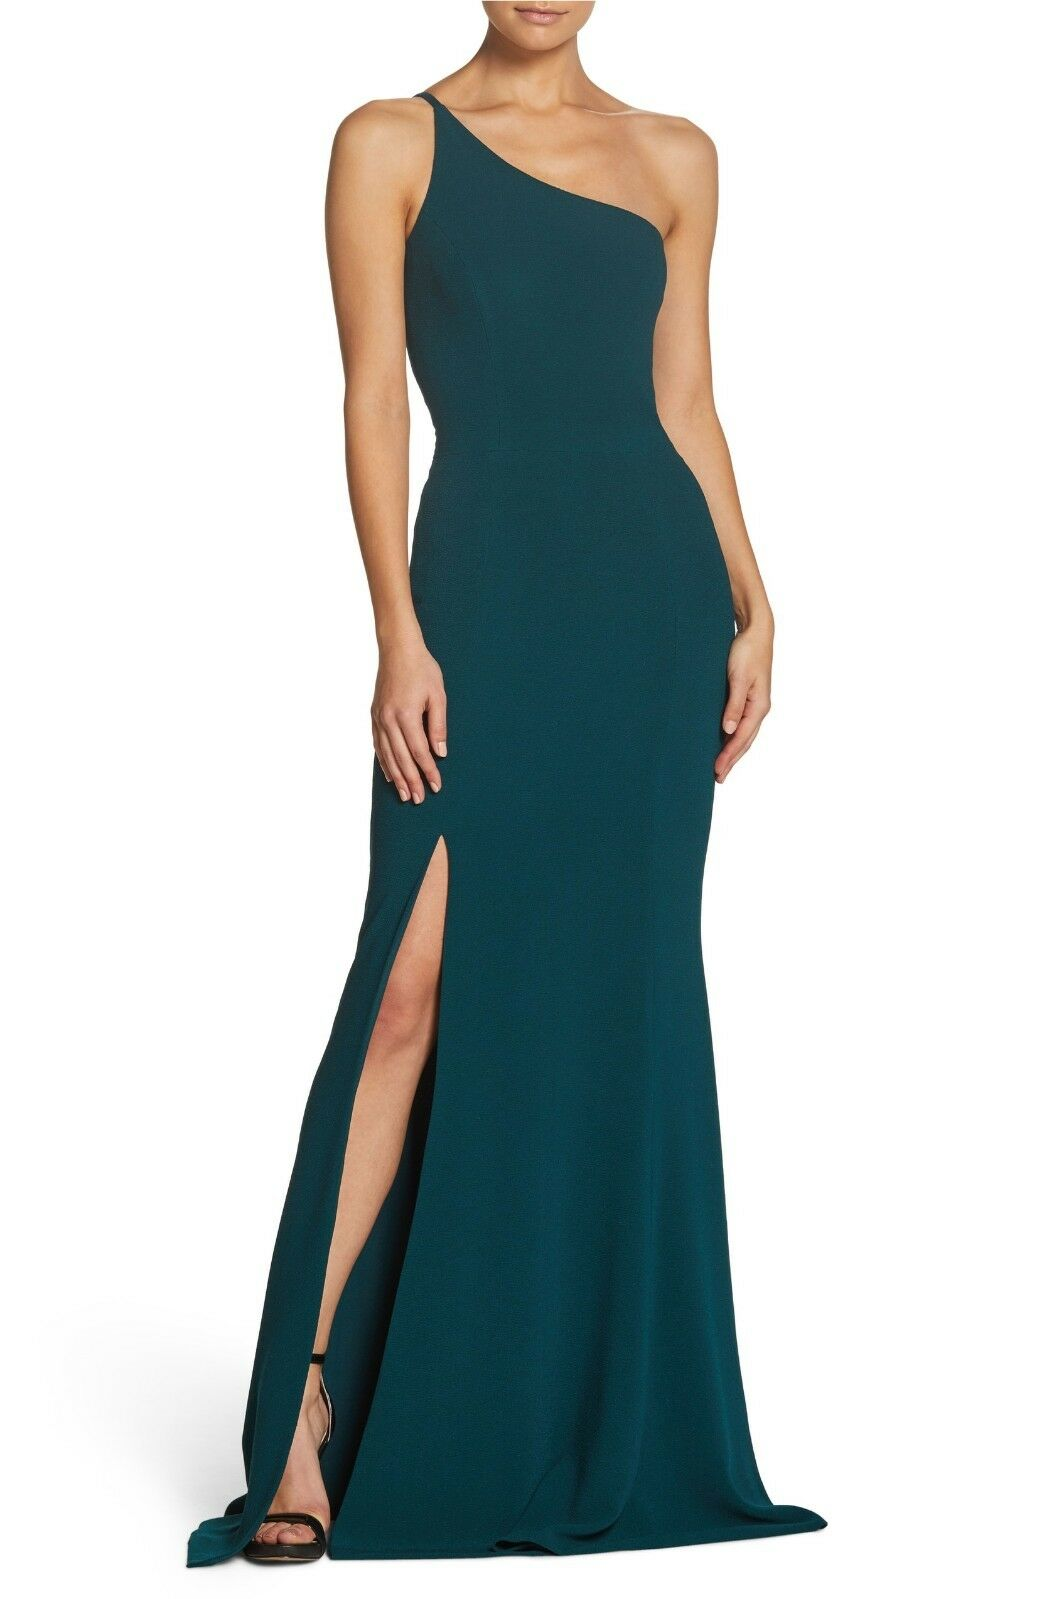 DRESS the POPULATION Bridal New Pine Amy One Shoulder Crepe Mermaid Gown XXL 18